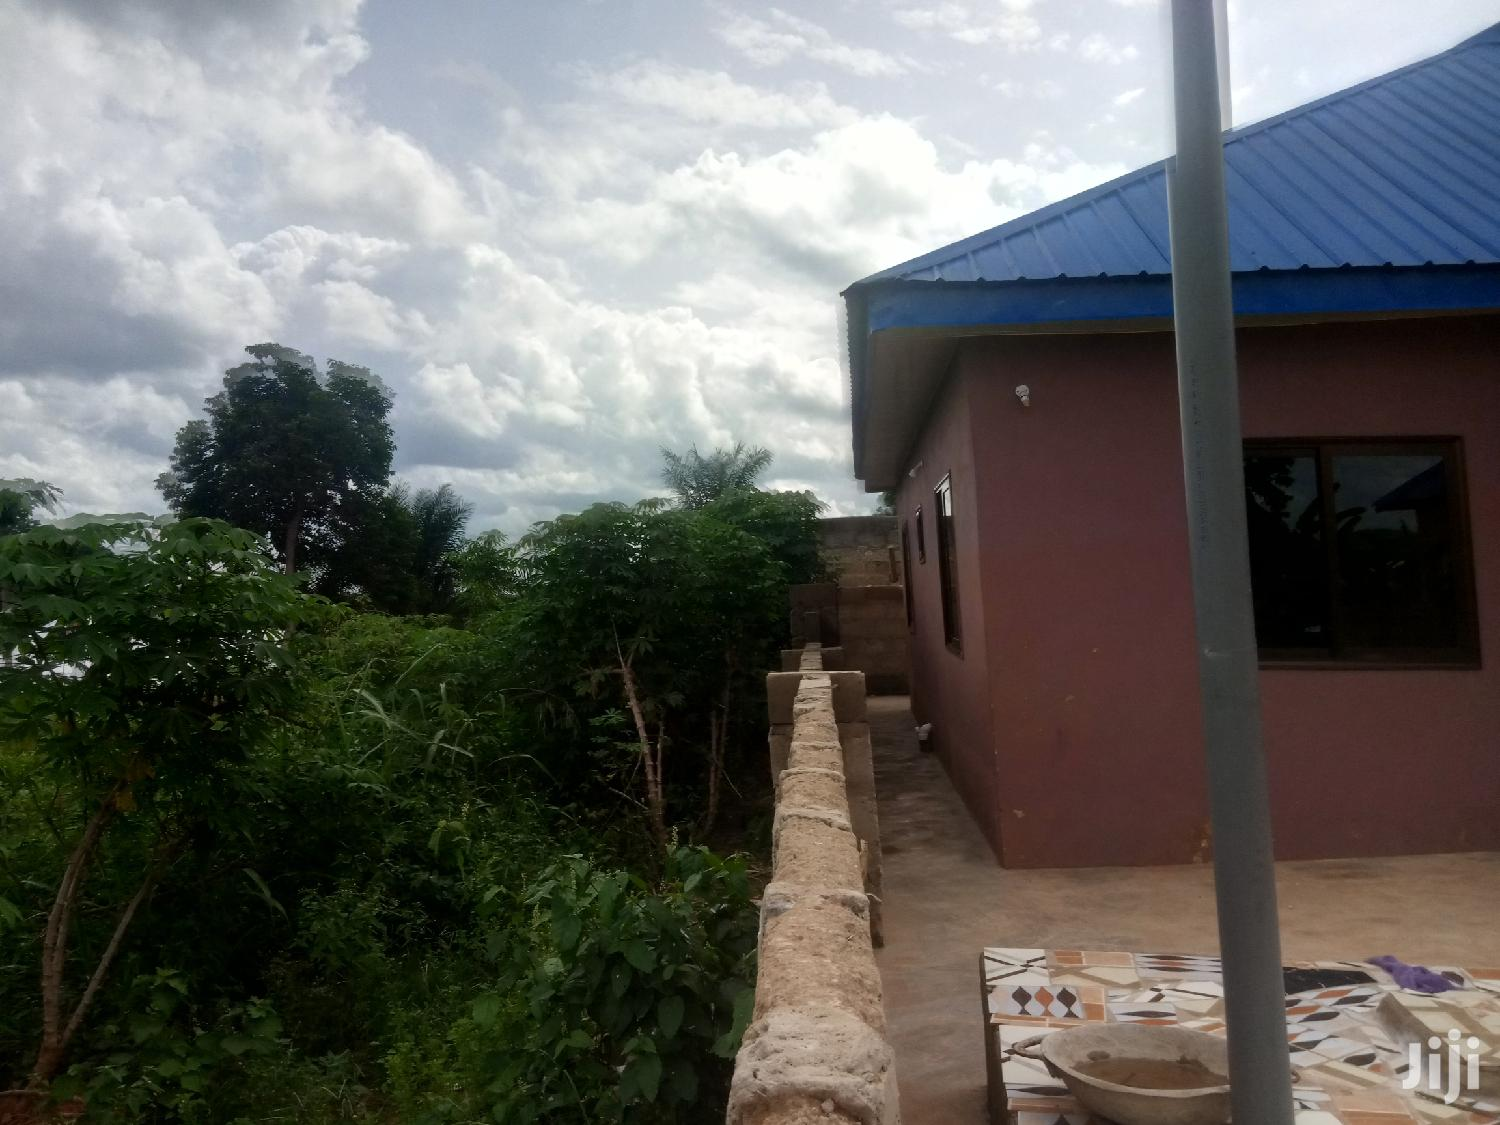 3 Bedroom Bungalow With Spacious Compound And Shop